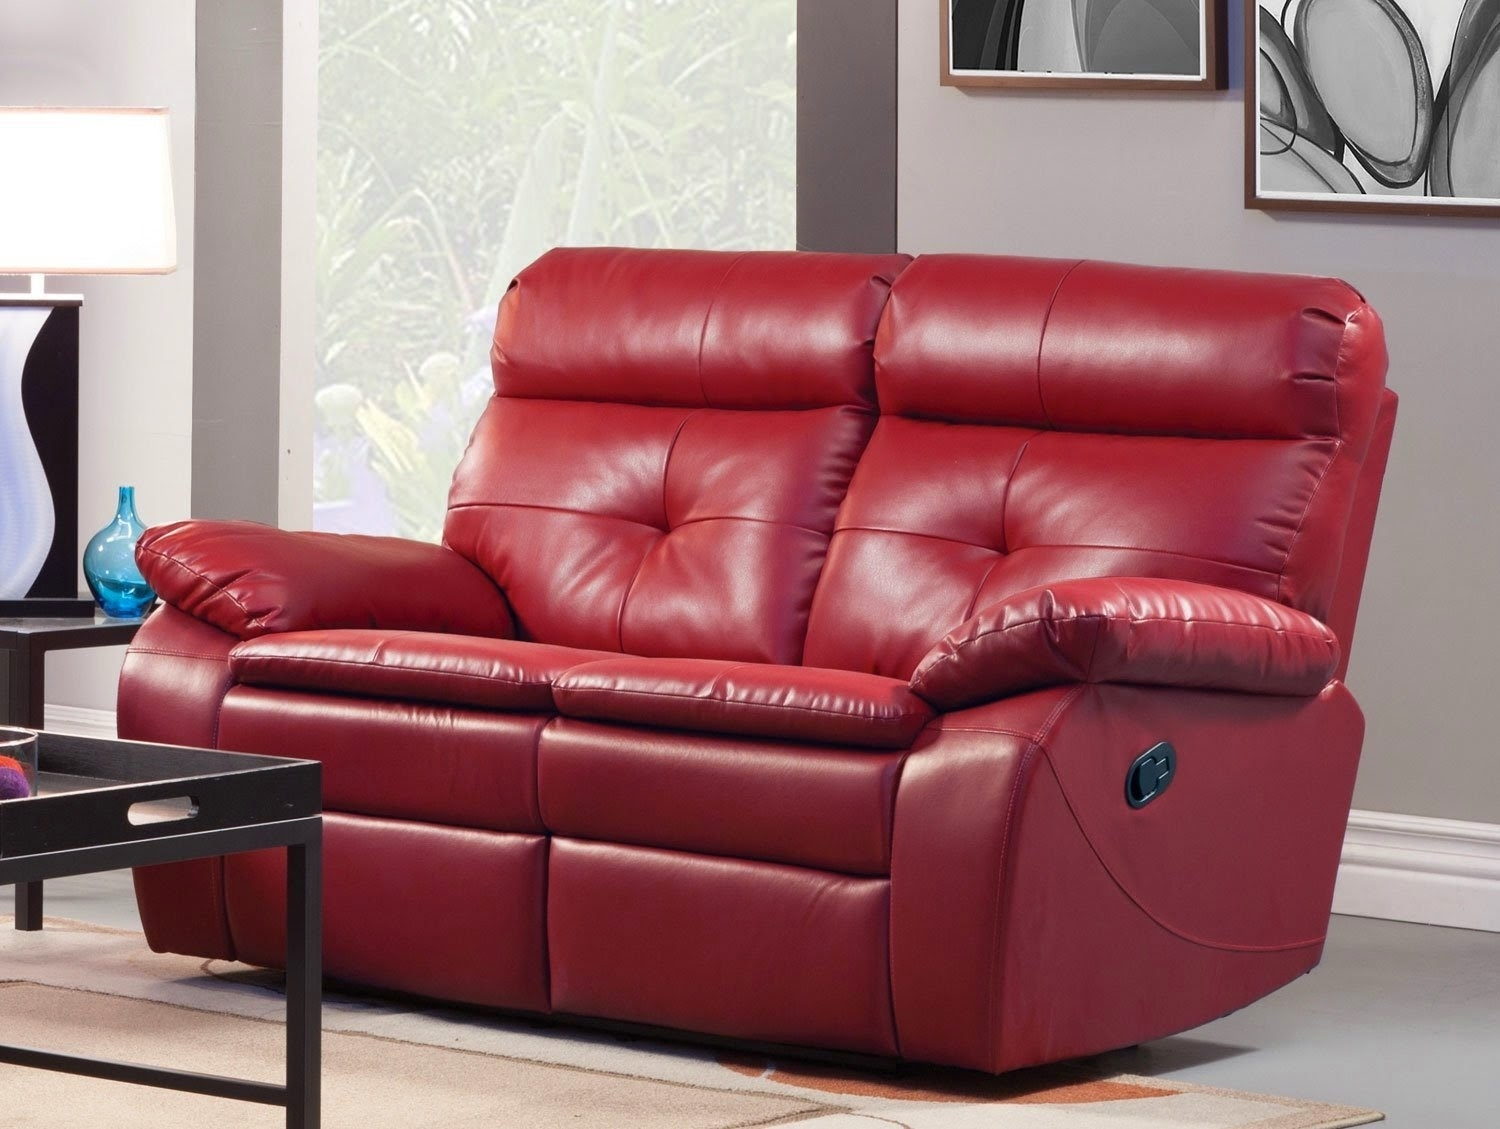 Good Red Leather Reclining Sofa And Loveseat 71 Sofa Design Ideas For Red Leather Reclining Sofas And Loveseats (View 6 of 10)